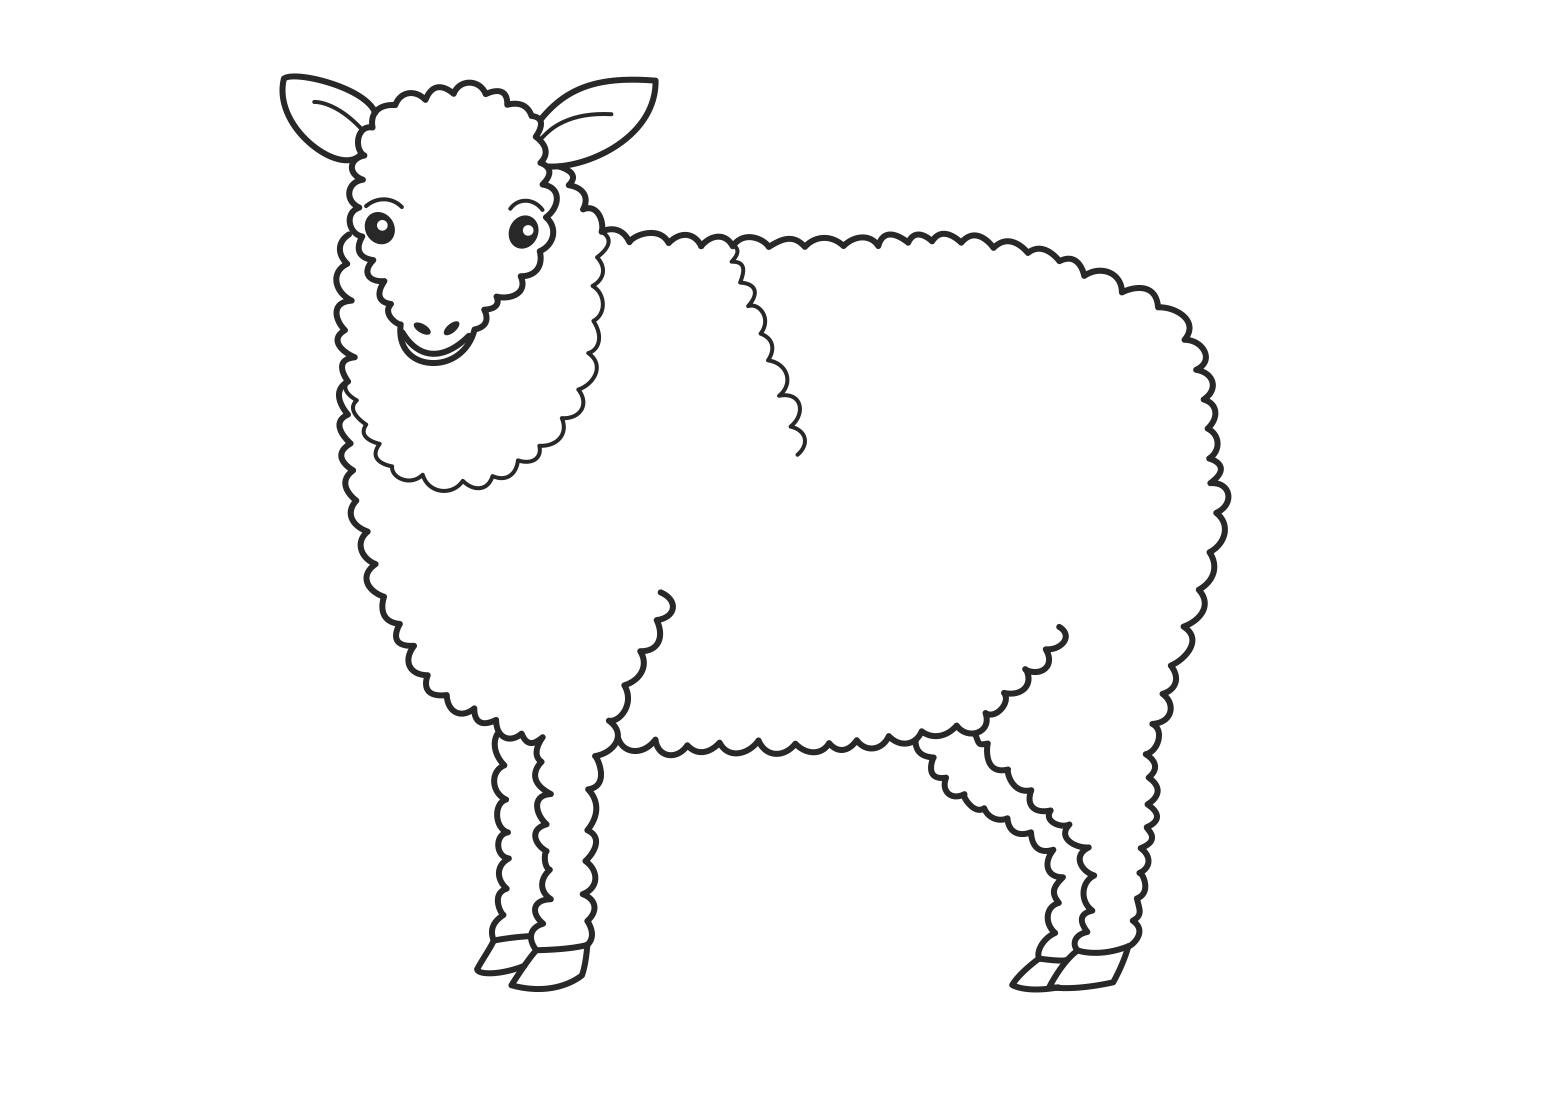 Lamb colouring pages to print - Printable Sheep Coloring Pages For Kids